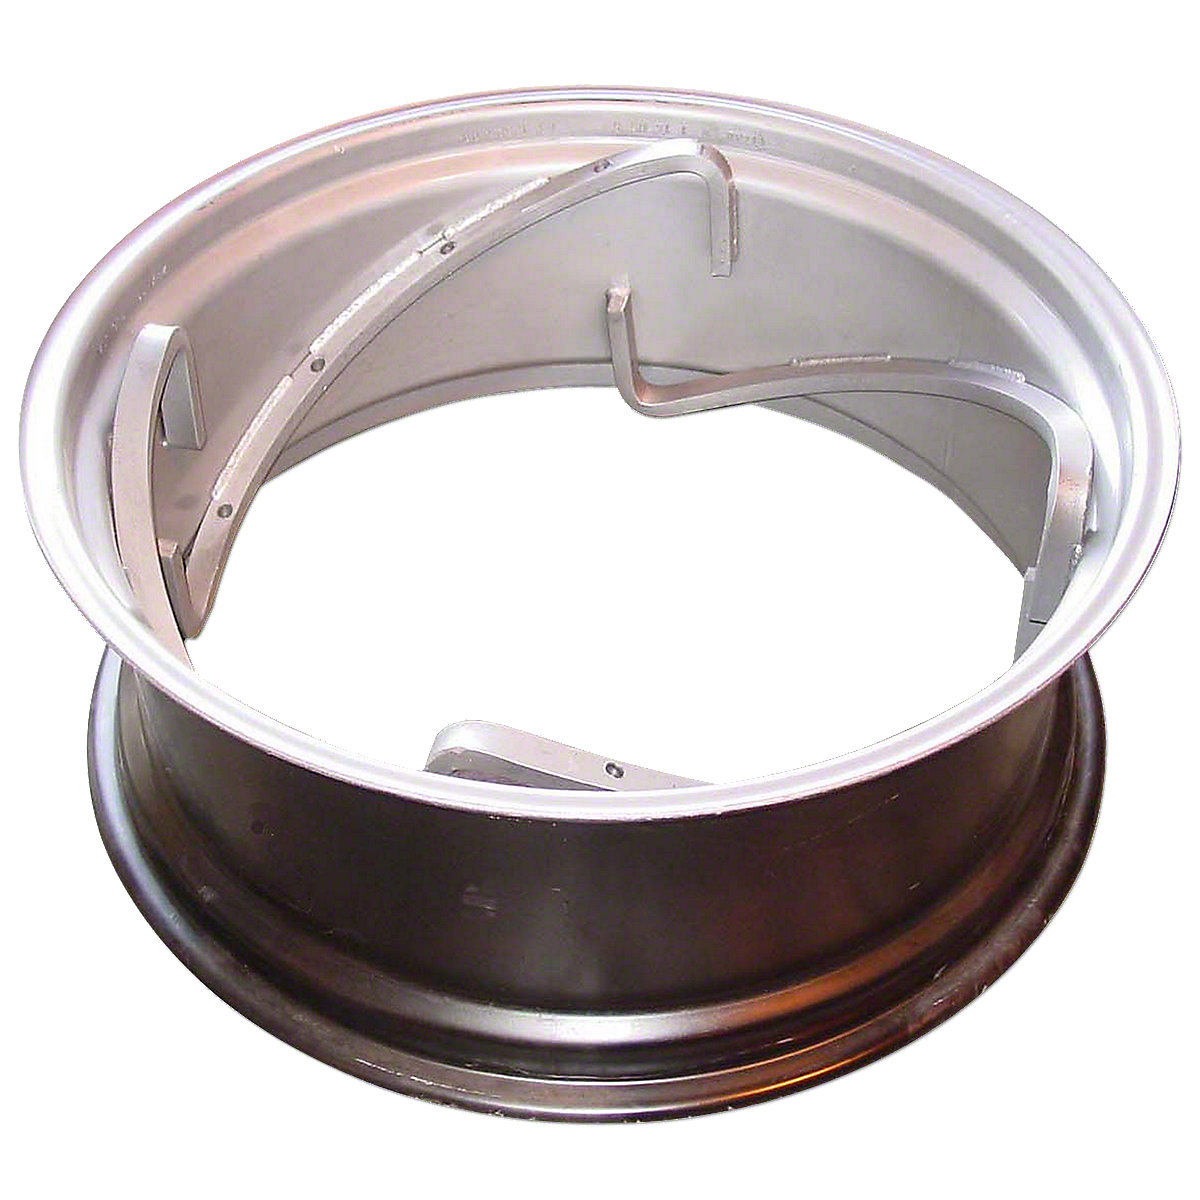 11X28 Spinout Rear Rim For Allis Chalmers: D14, D15, WD, WD45.